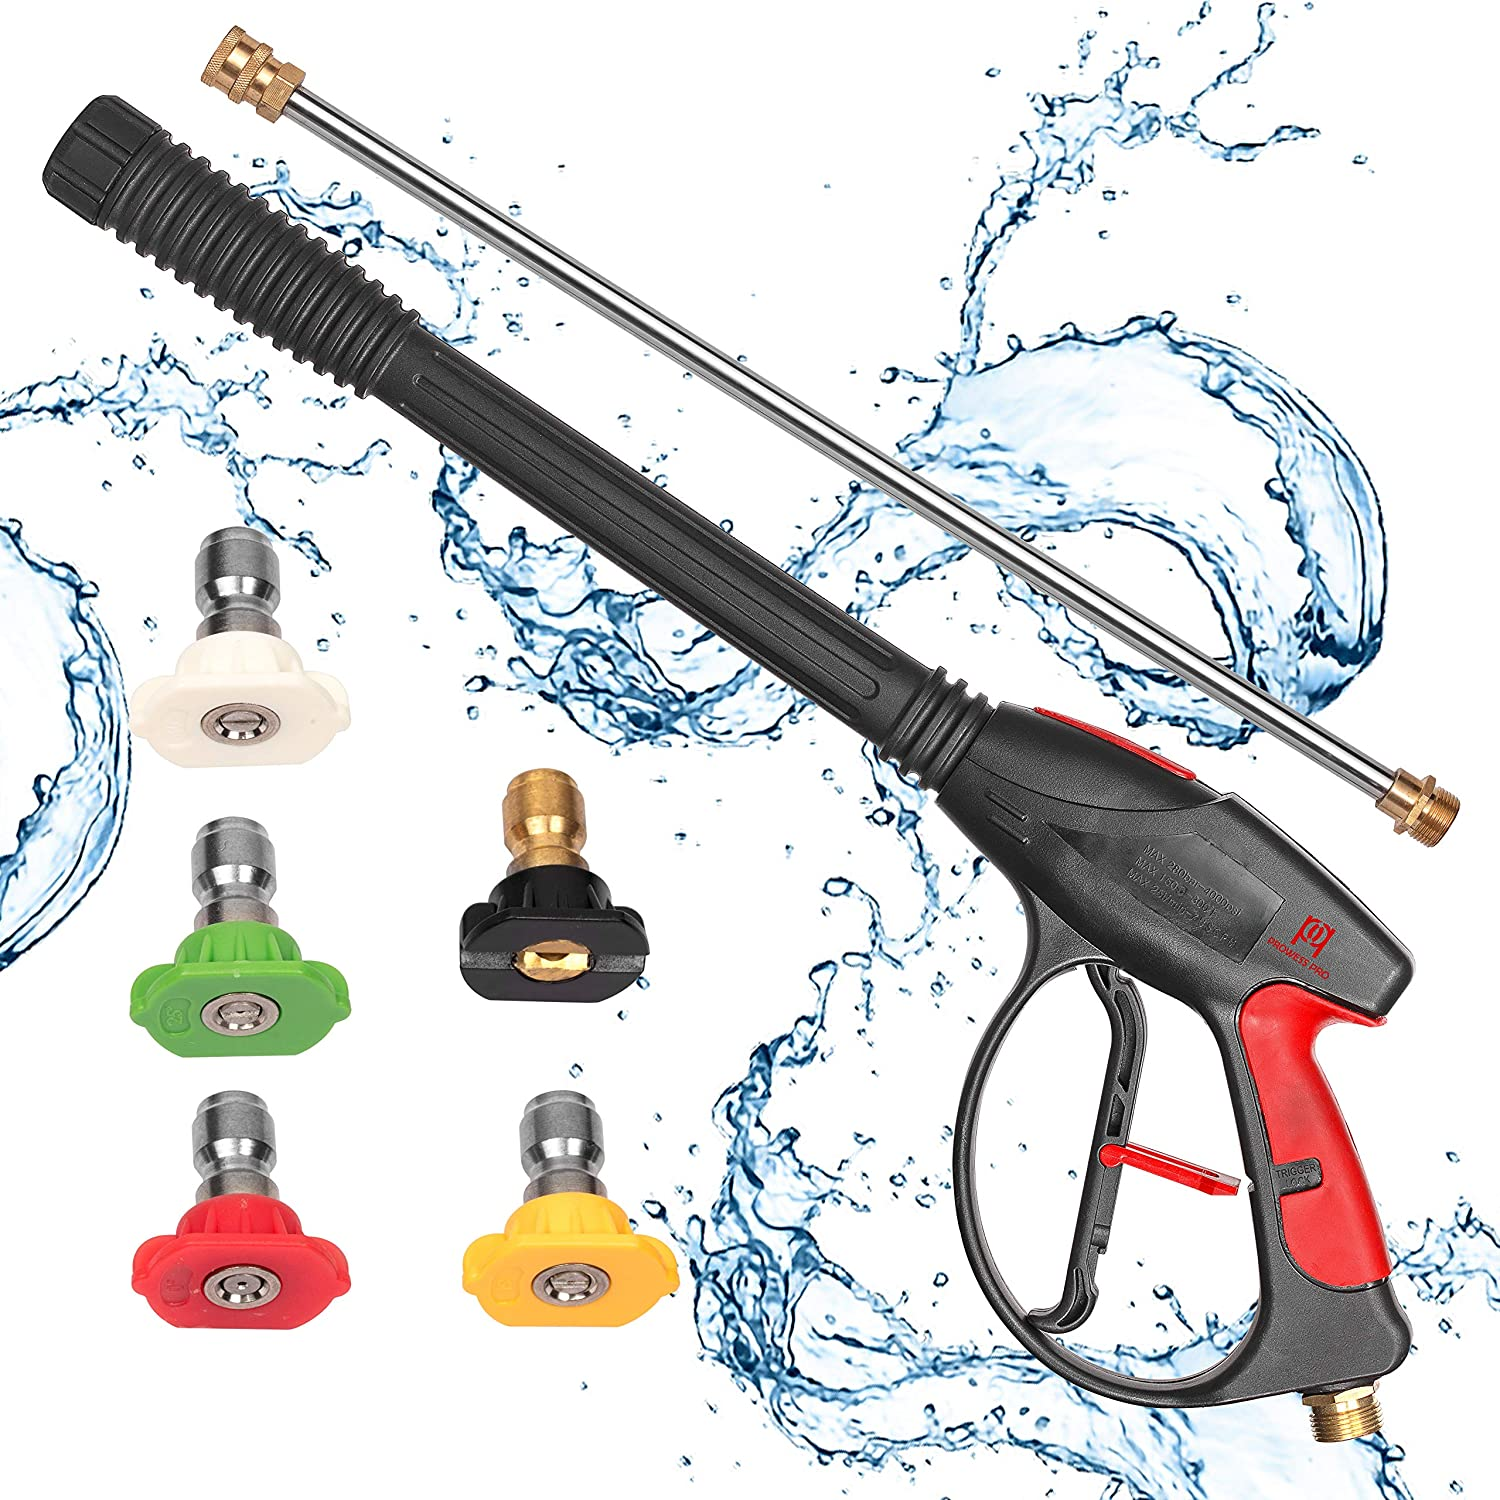 ProwessPro High Pressure Washer Gun 4000 PSI with 21 Inch Extension Wand Lance, 5 Quick Connect Nozzles and M22x14mm Connector